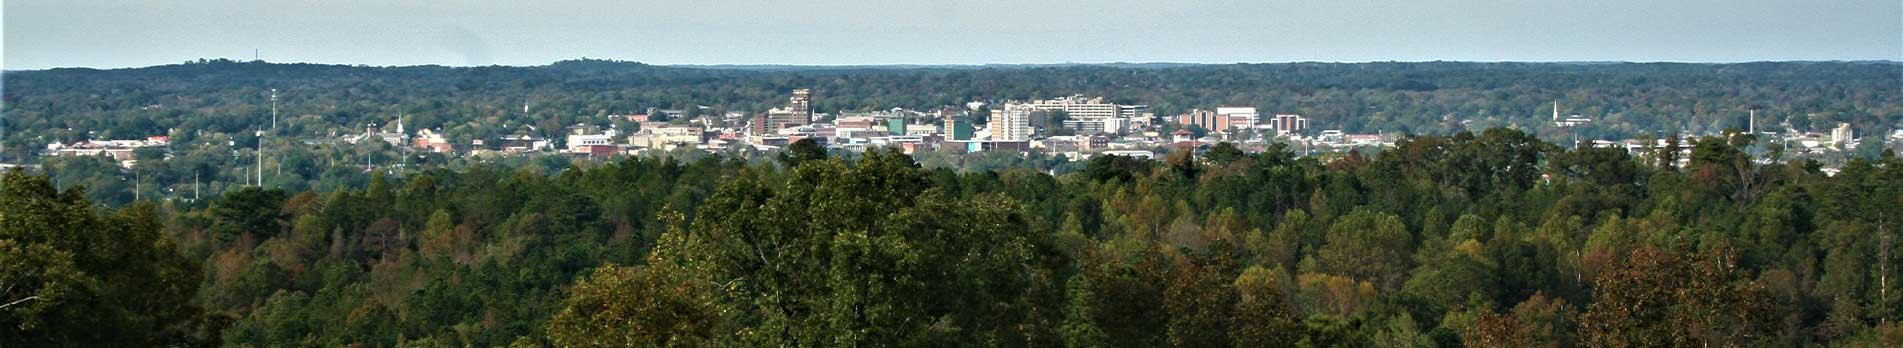 An aerial view of a vast amount of trees surrounding the city of Meridian.